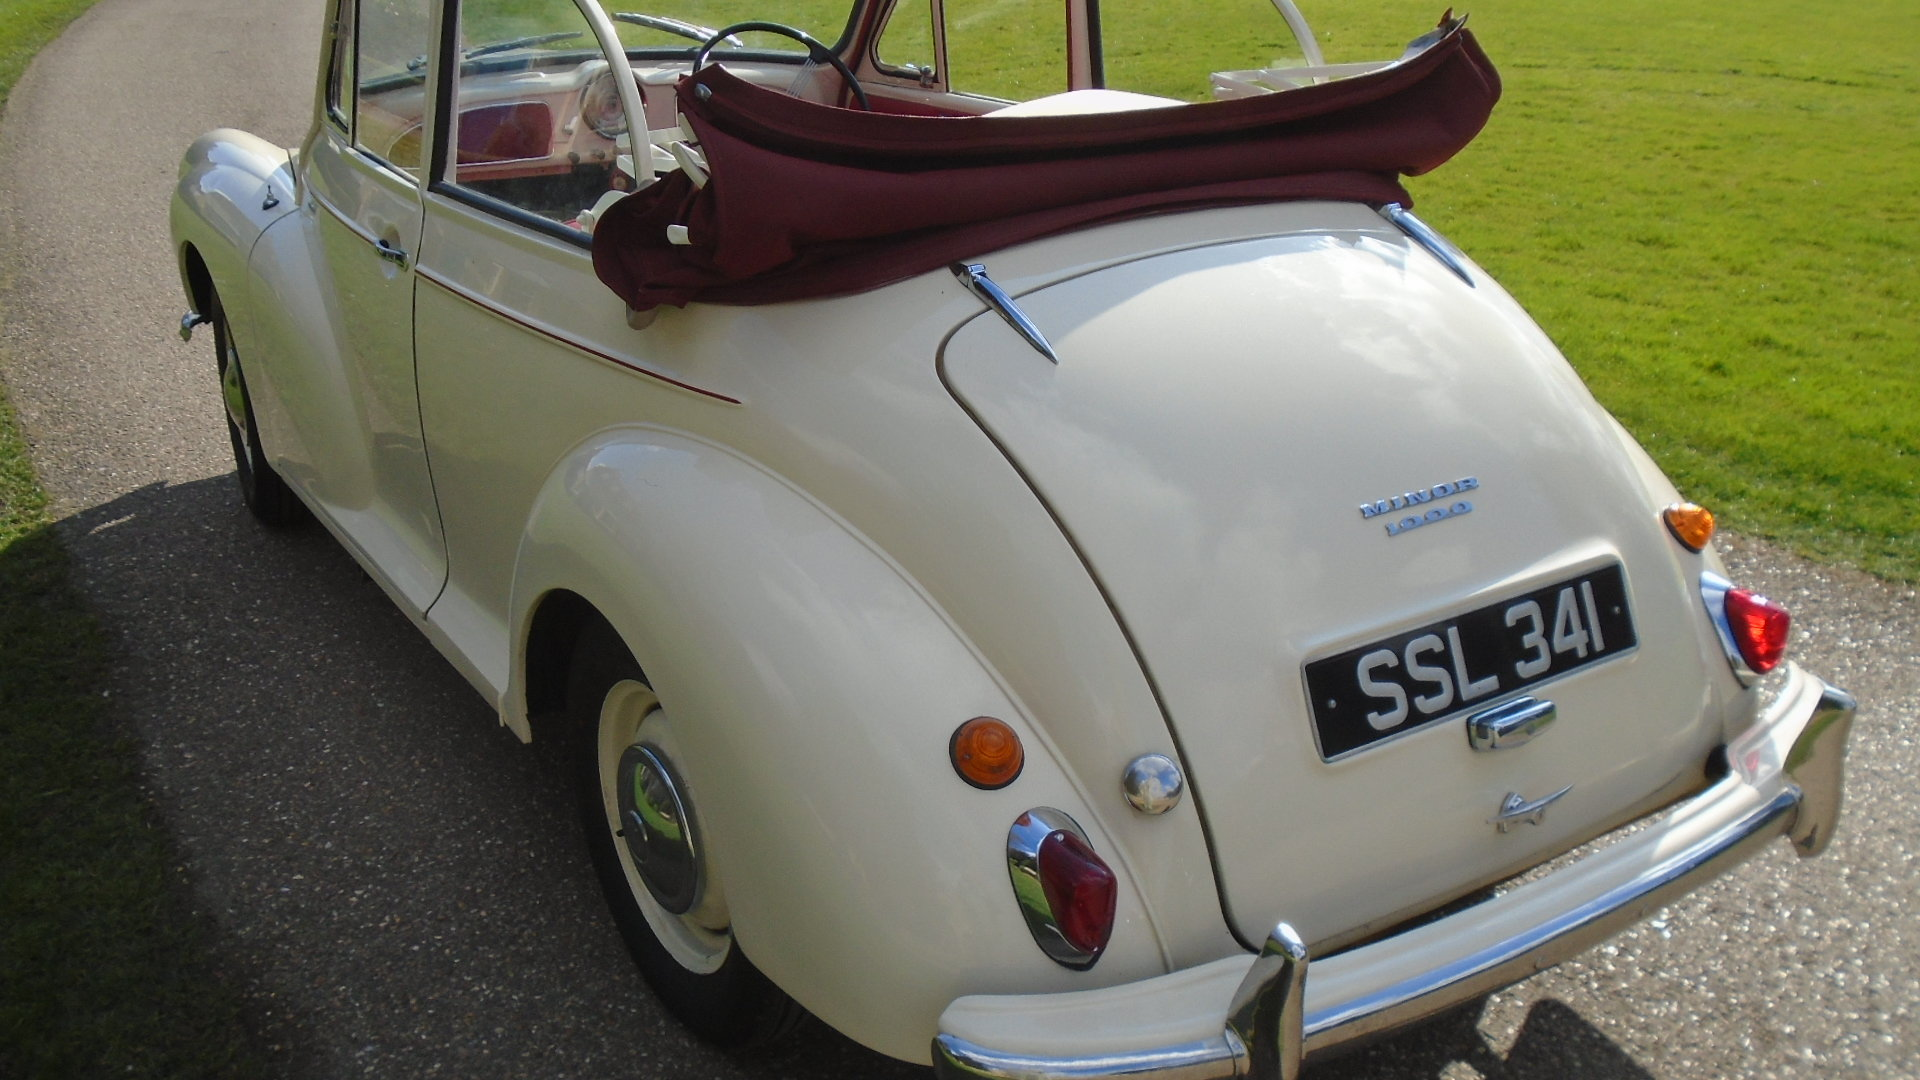 1962 Morris Minor Convertible, Genuine Tourer. For Sale (picture 4 of 10)